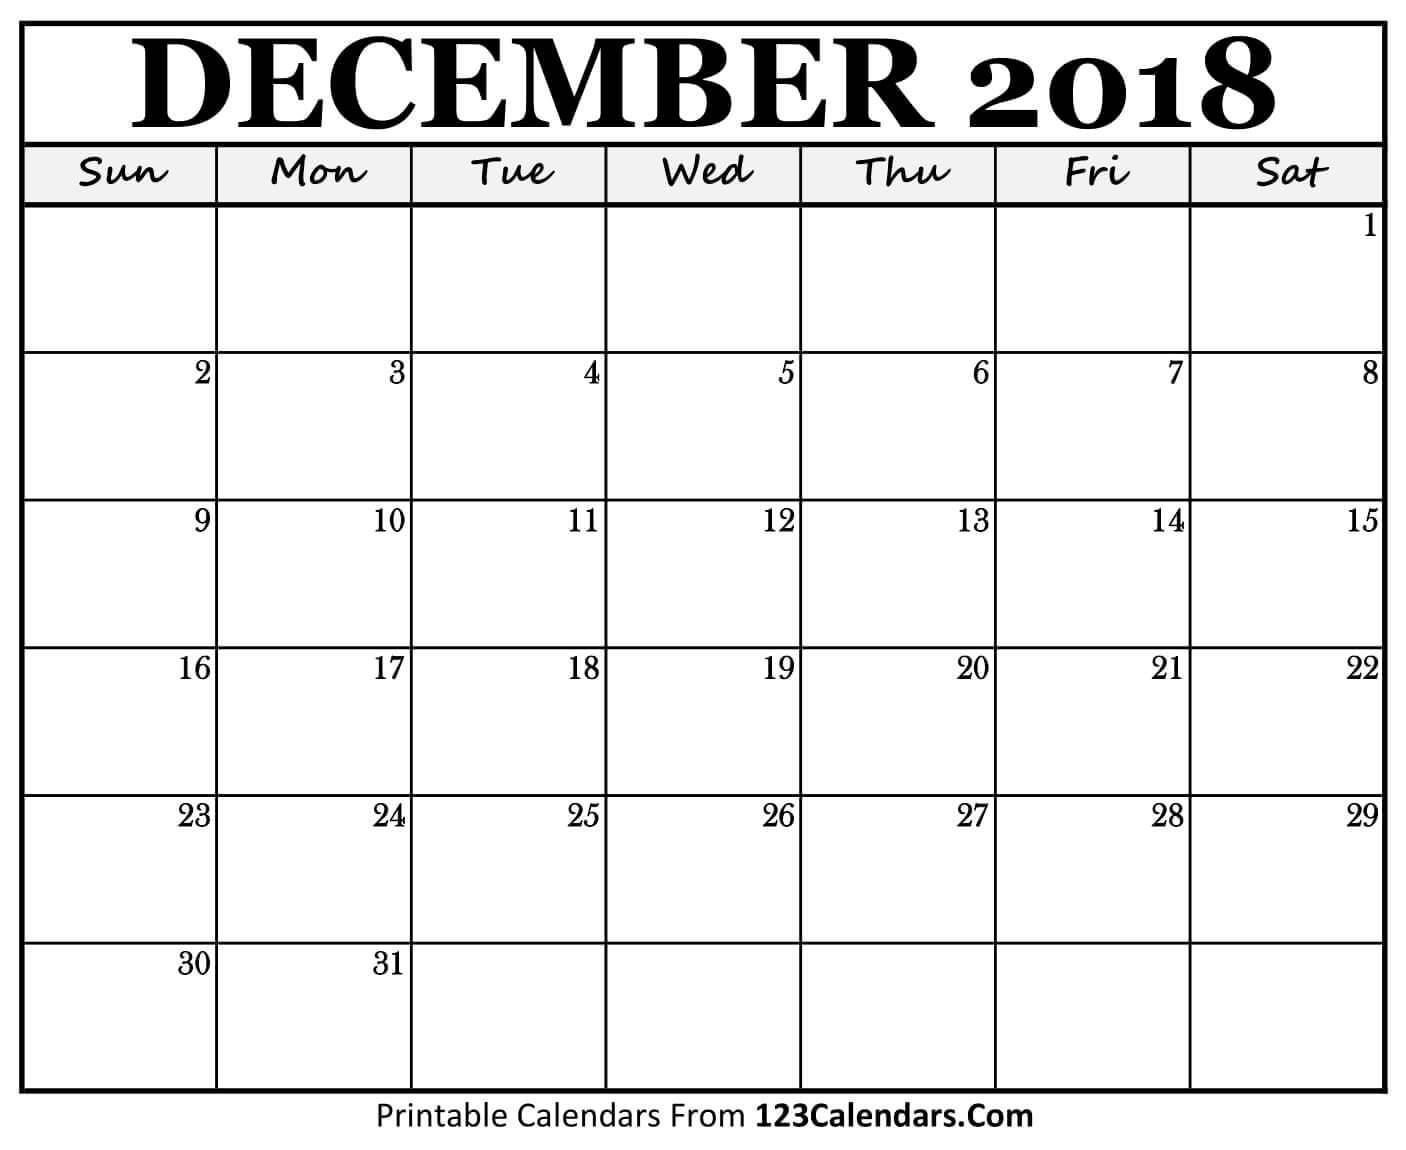 Printable December 2018 Calendar Template - Printable Calendar 2019 throughout Blank Calendar Page December